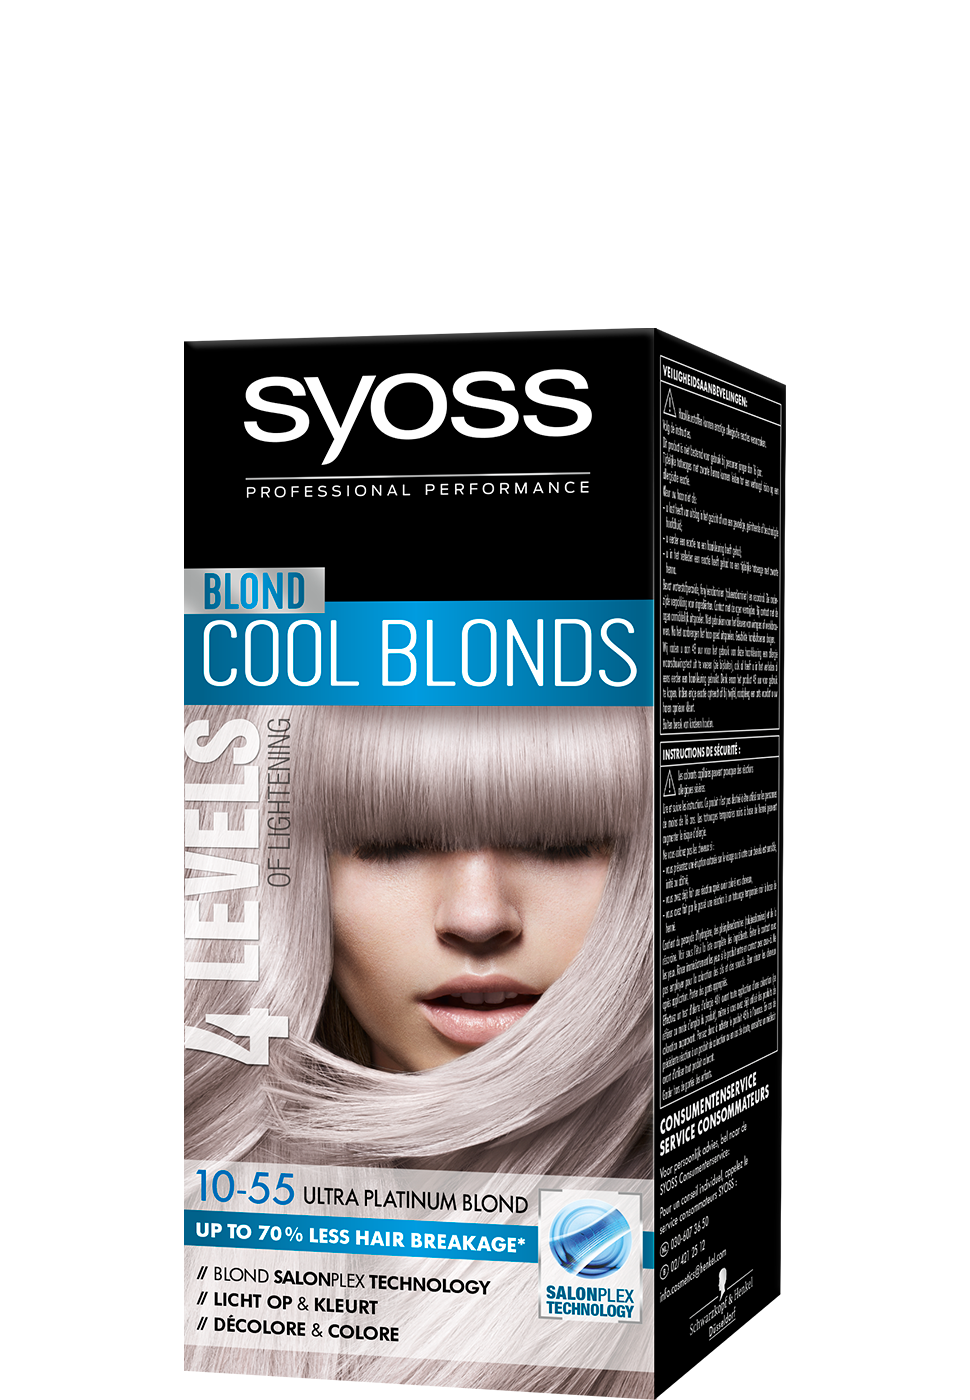 syoss_com_970x1400CoolBlonds